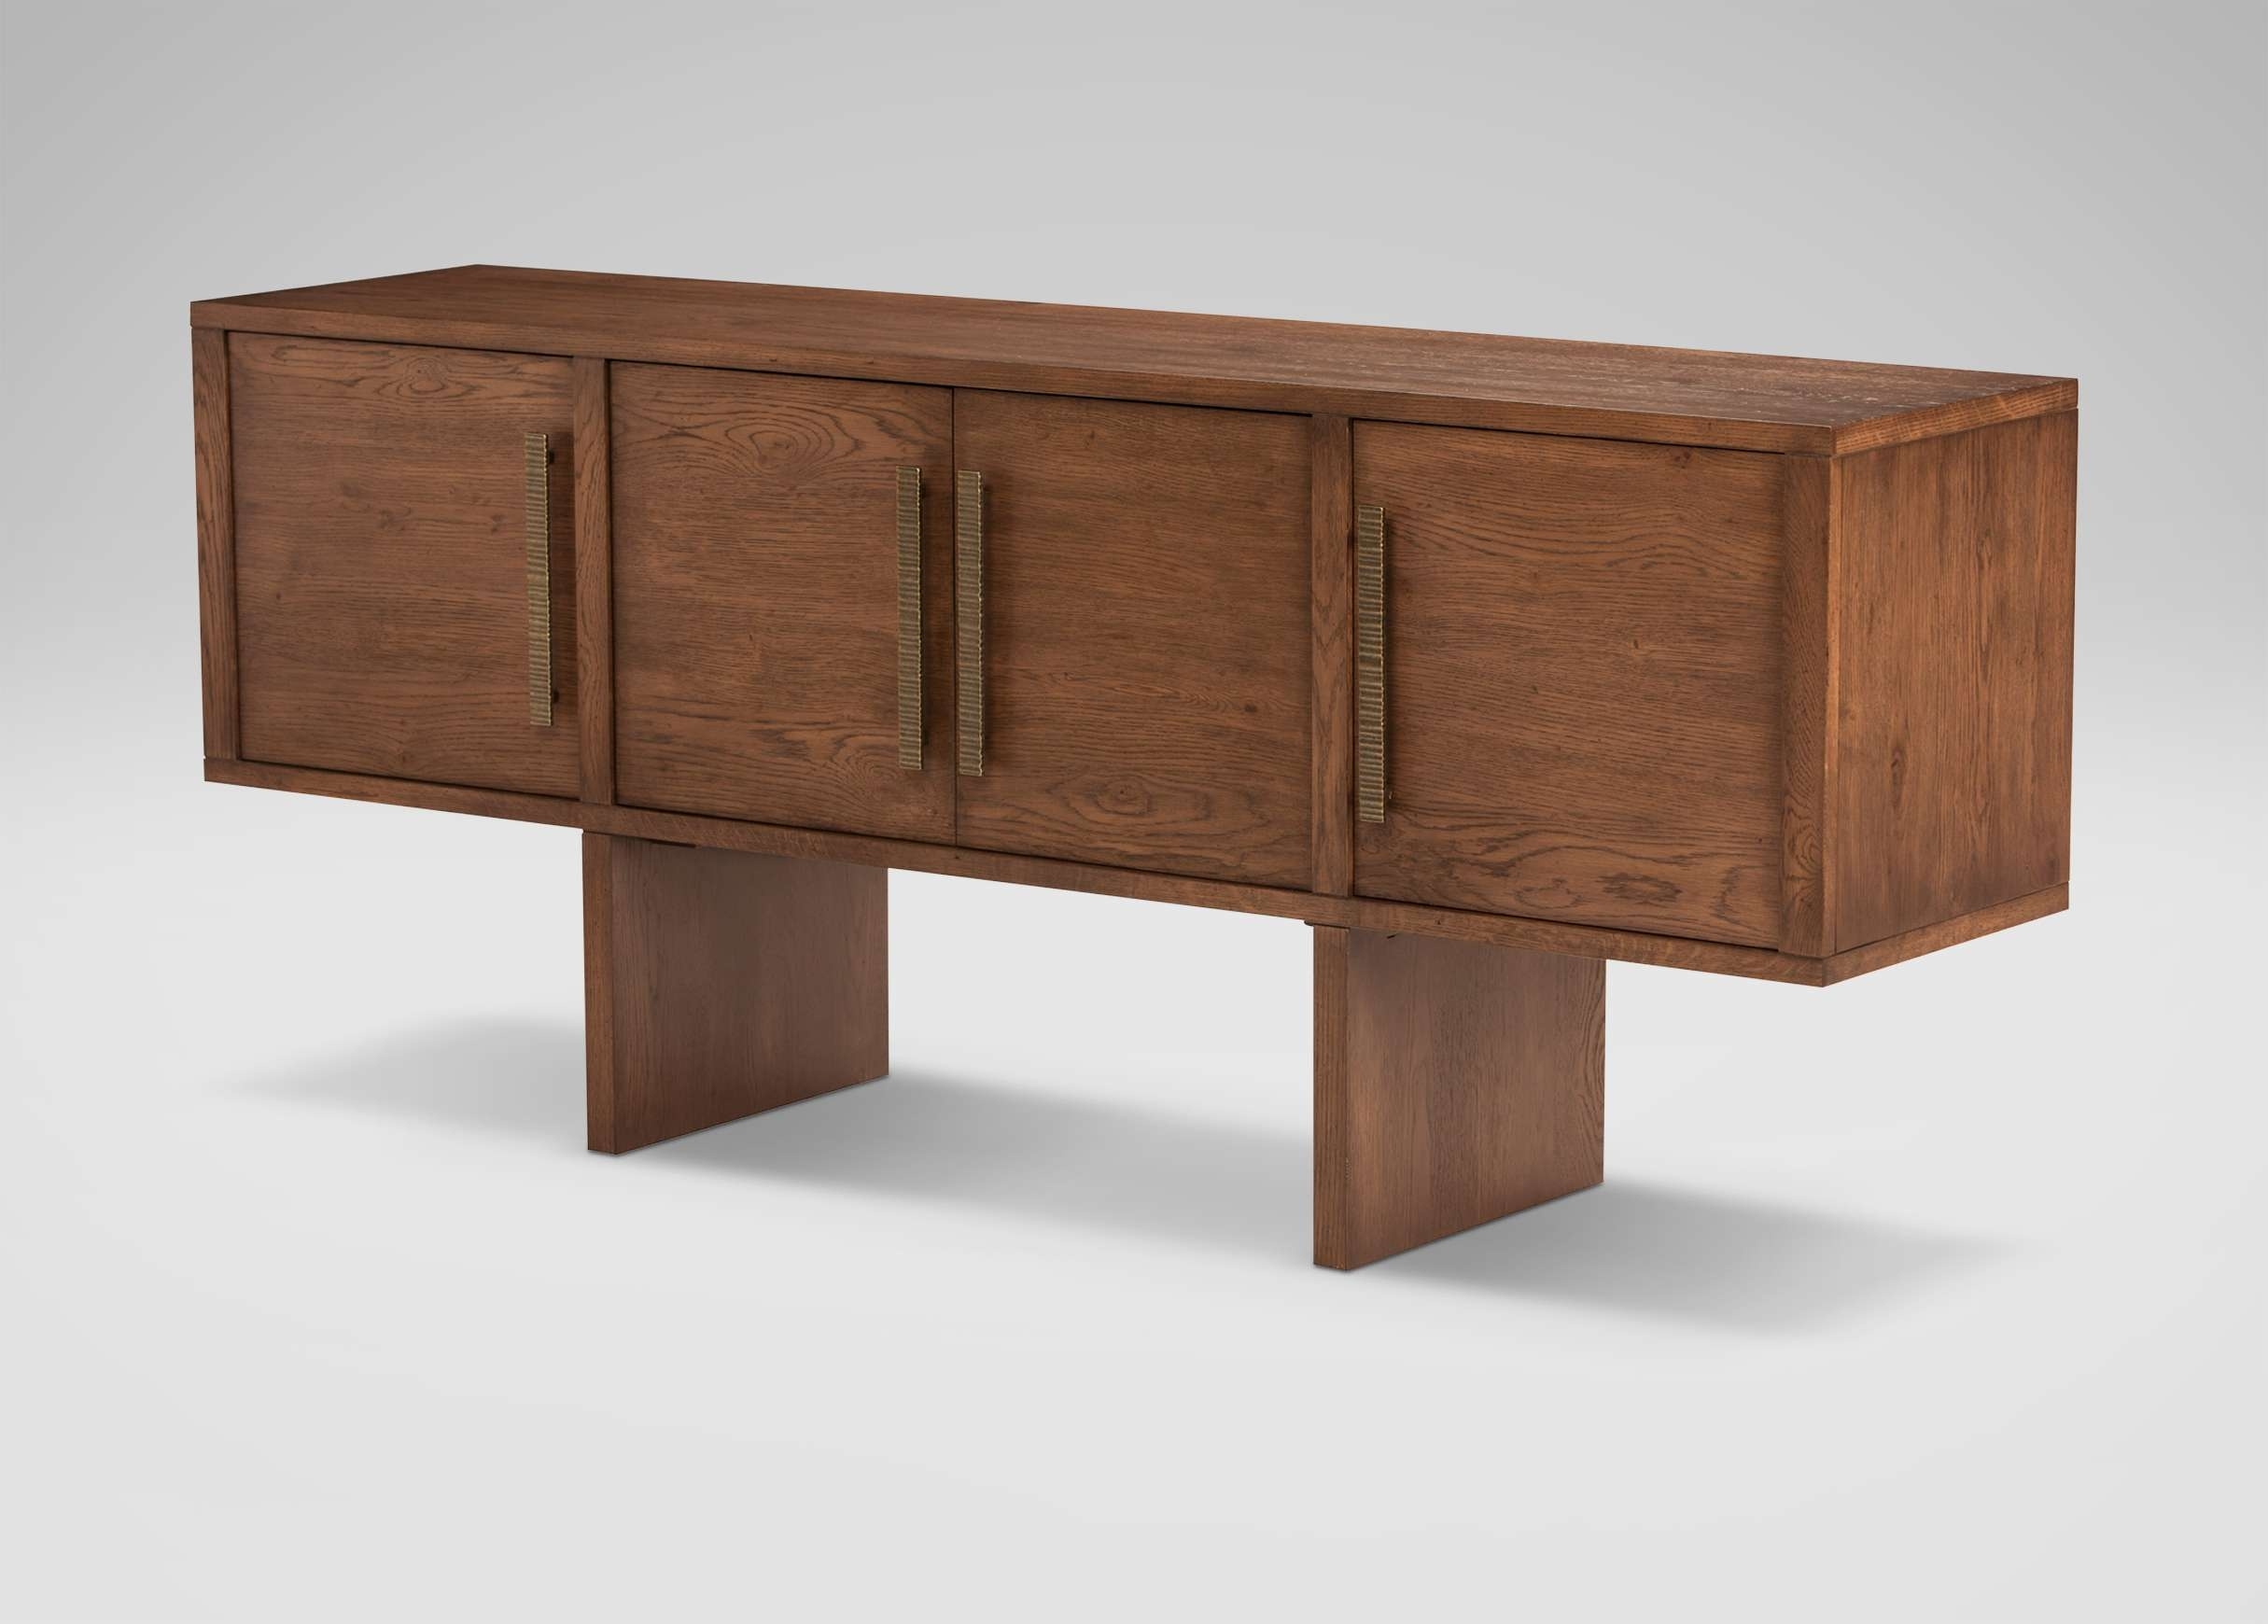 Jameson Buffet | Buffets, Sideboards & Servers Within Ethan Allen Sideboards (View 10 of 20)